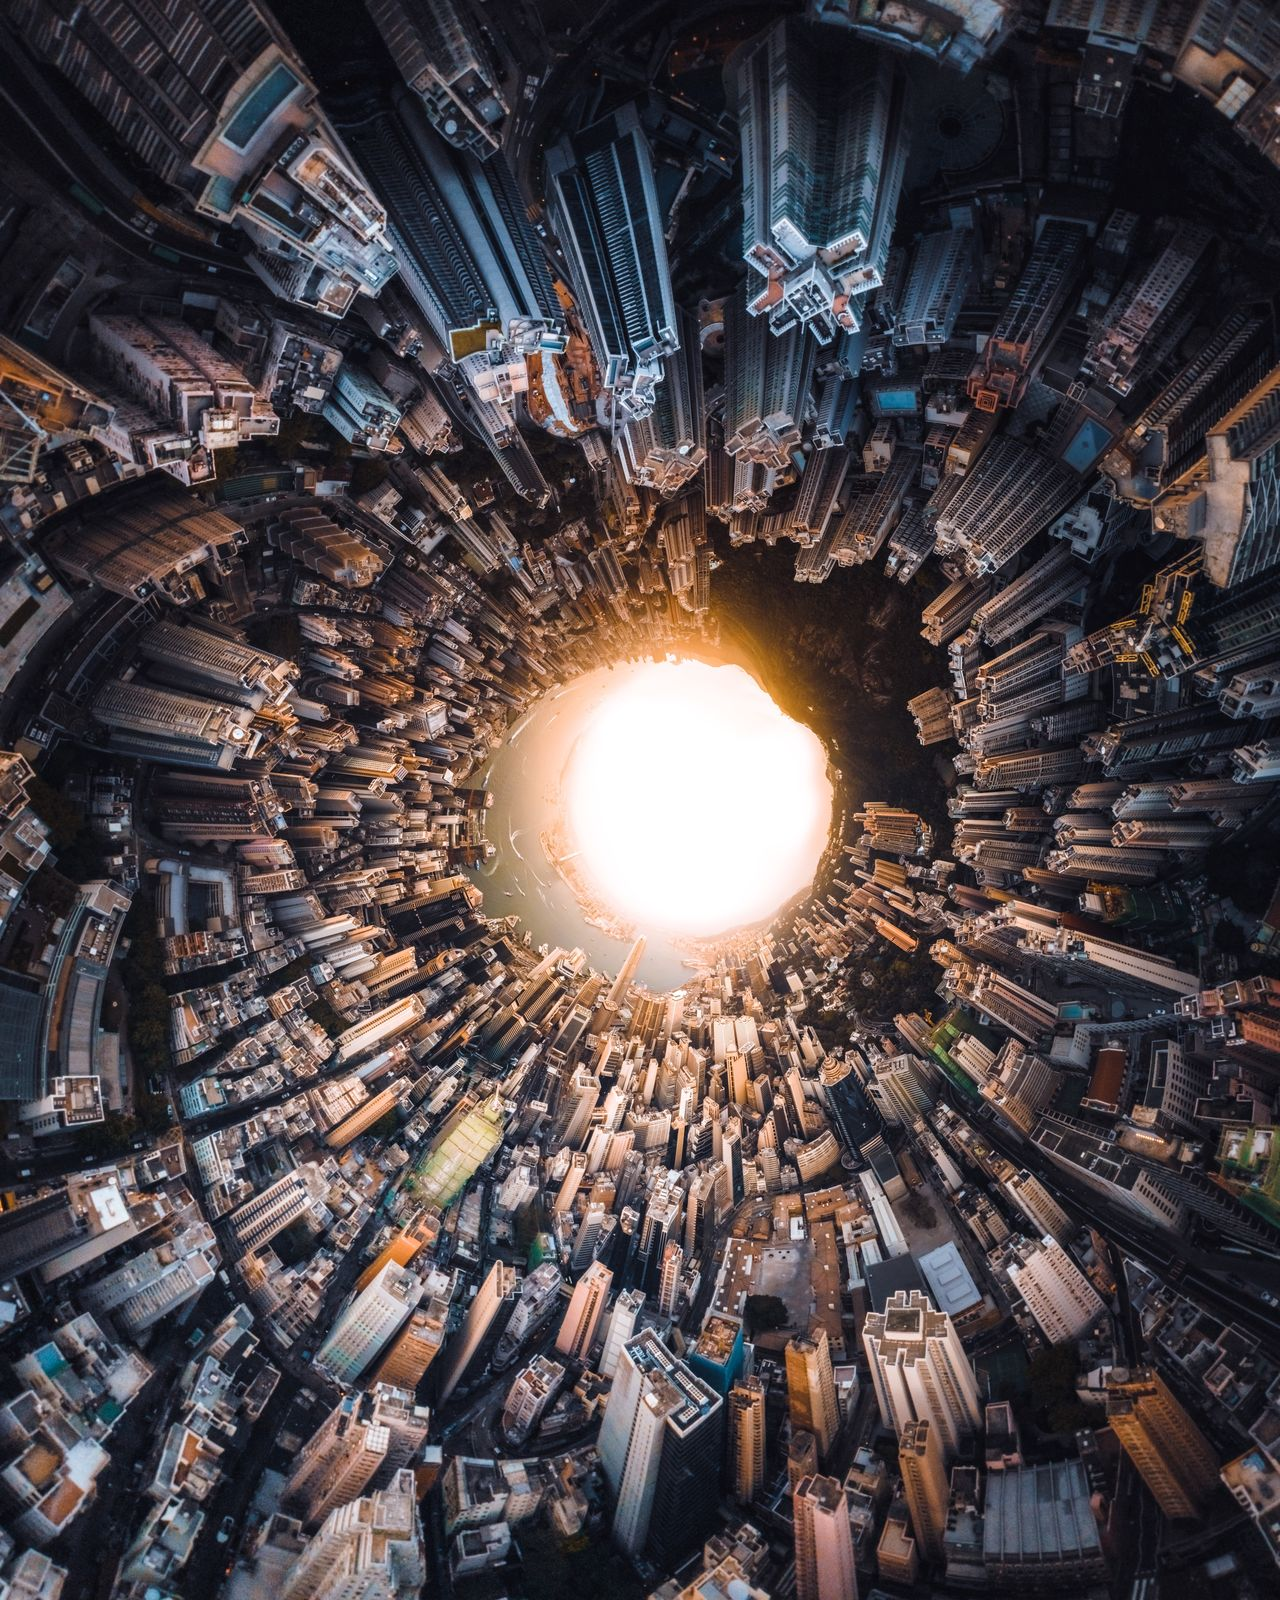 Little planet format image of cityscape